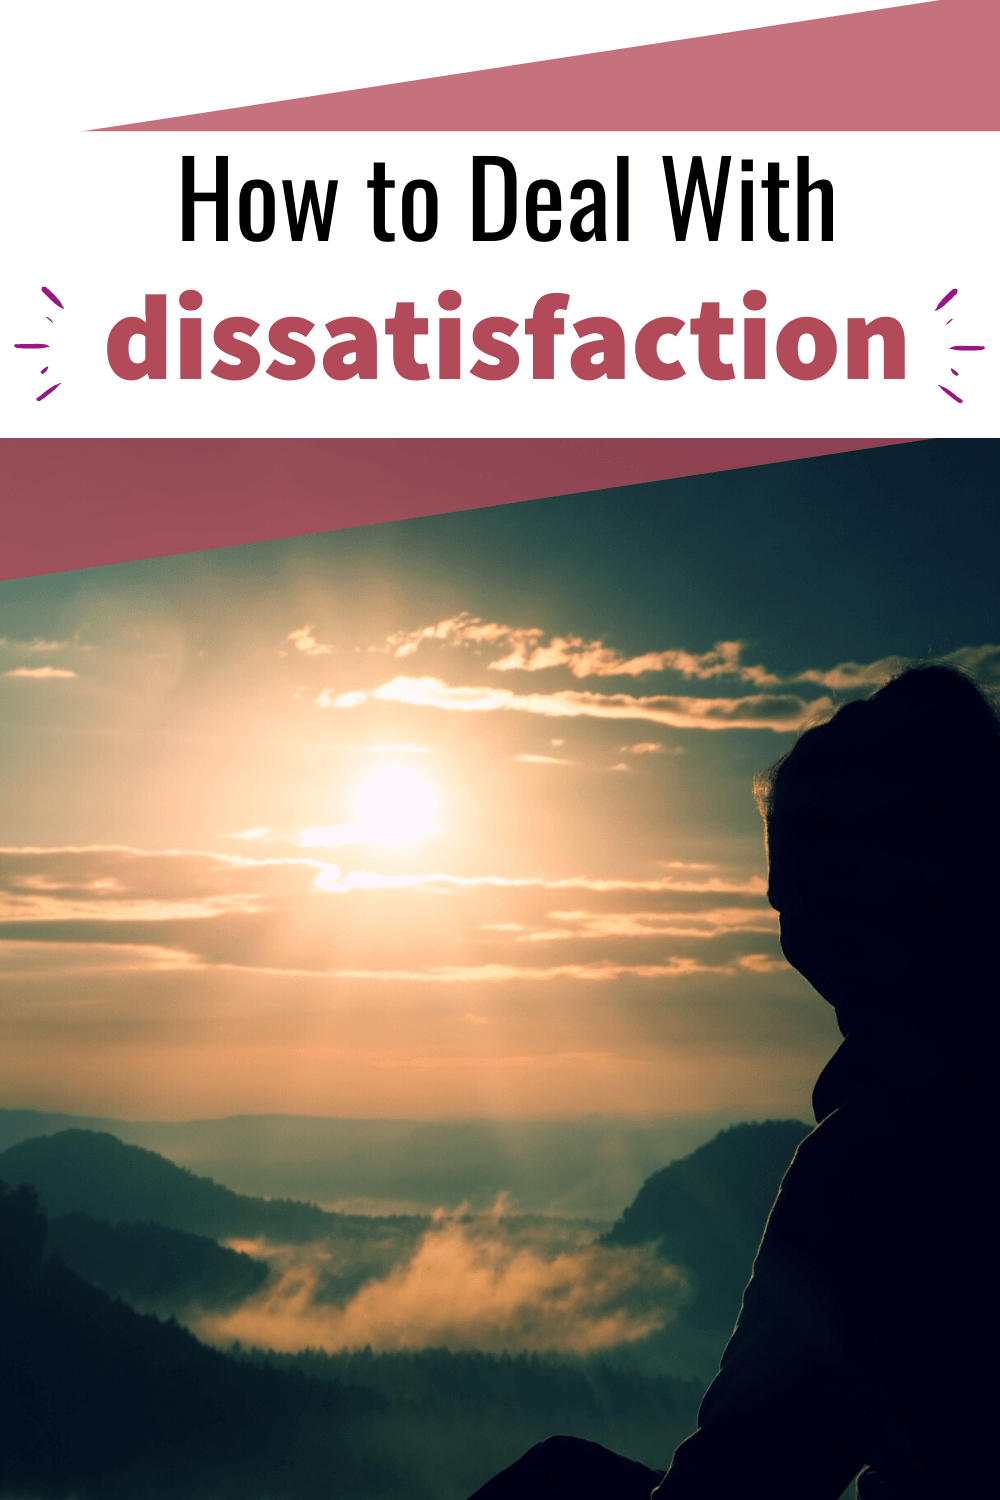 how to deal with dissatisfaction